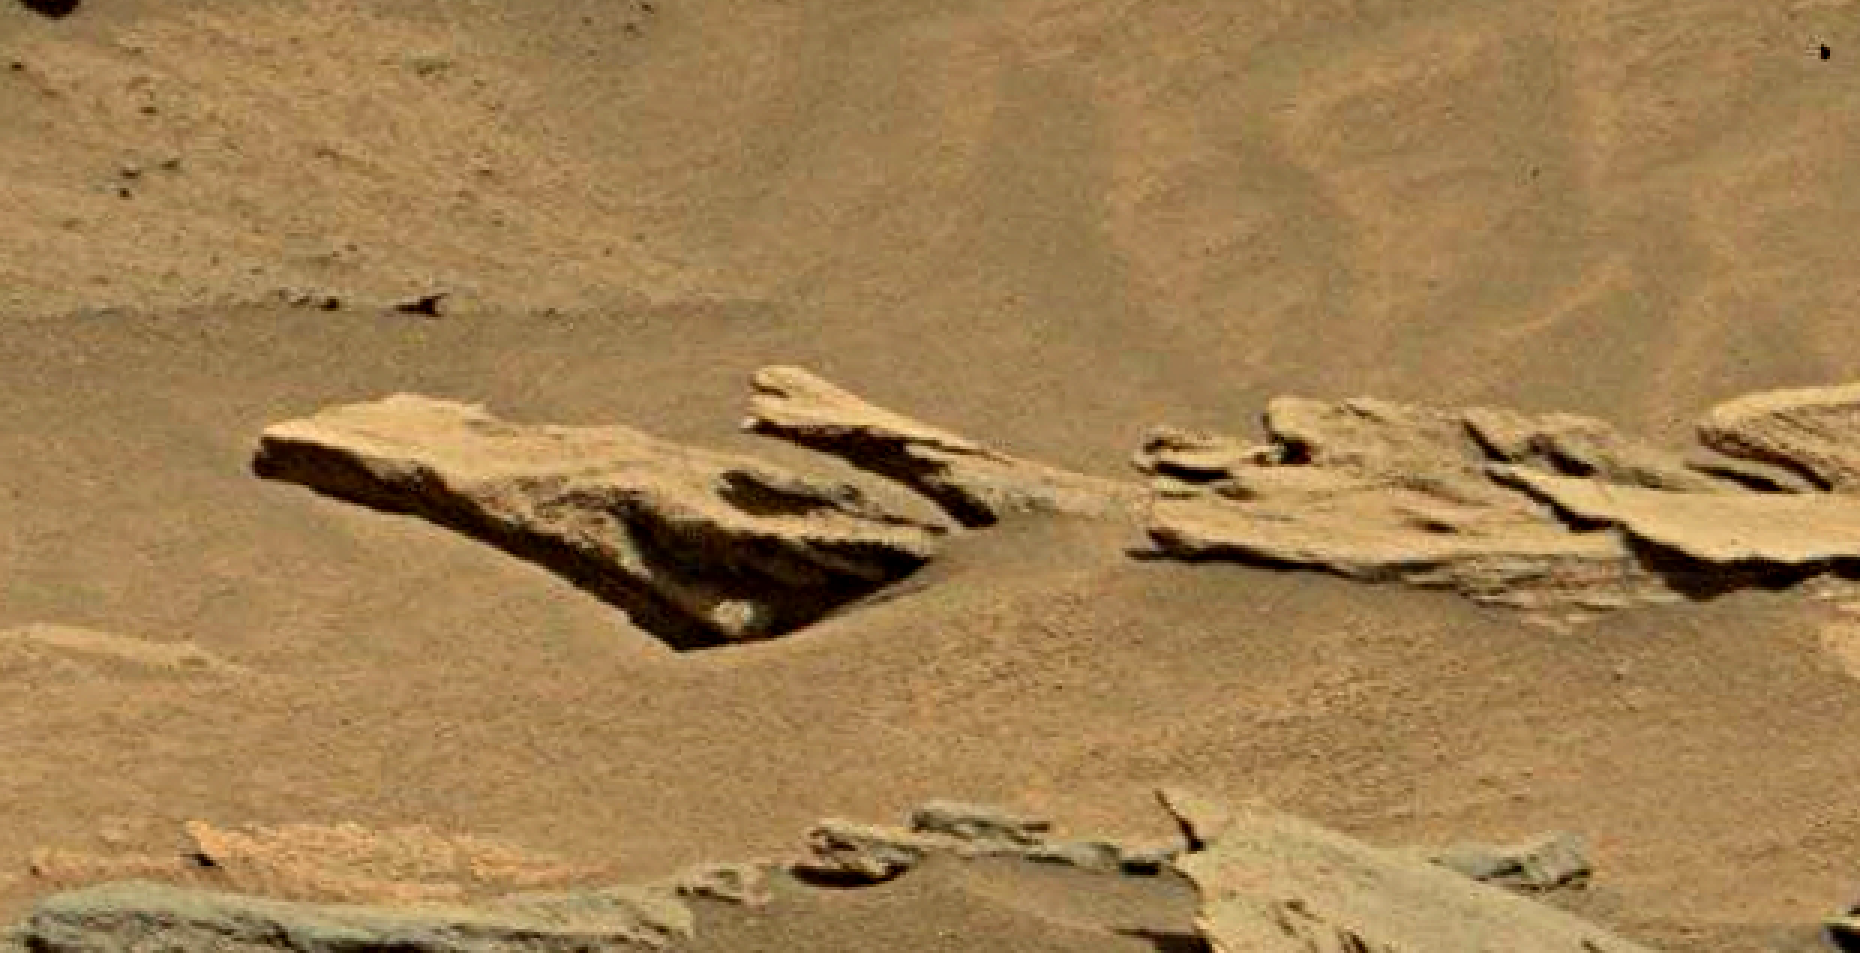 mars sol 1346 anomaly-artifacts 5 was life on mars